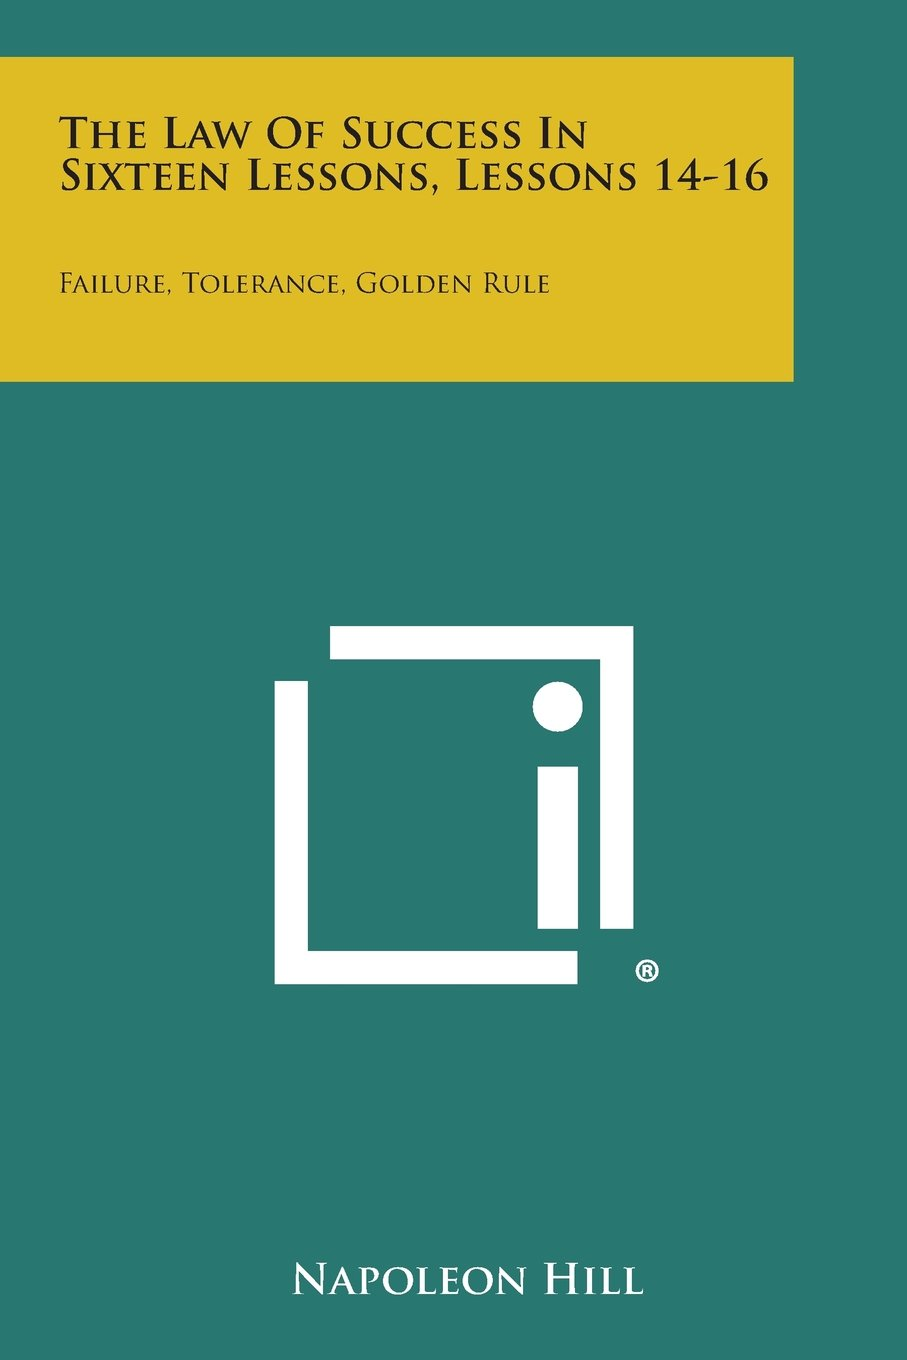 Read Online The Law of Success in Sixteen Lessons, Lessons 14-16: Failure, Tolerance, Golden Rule pdf